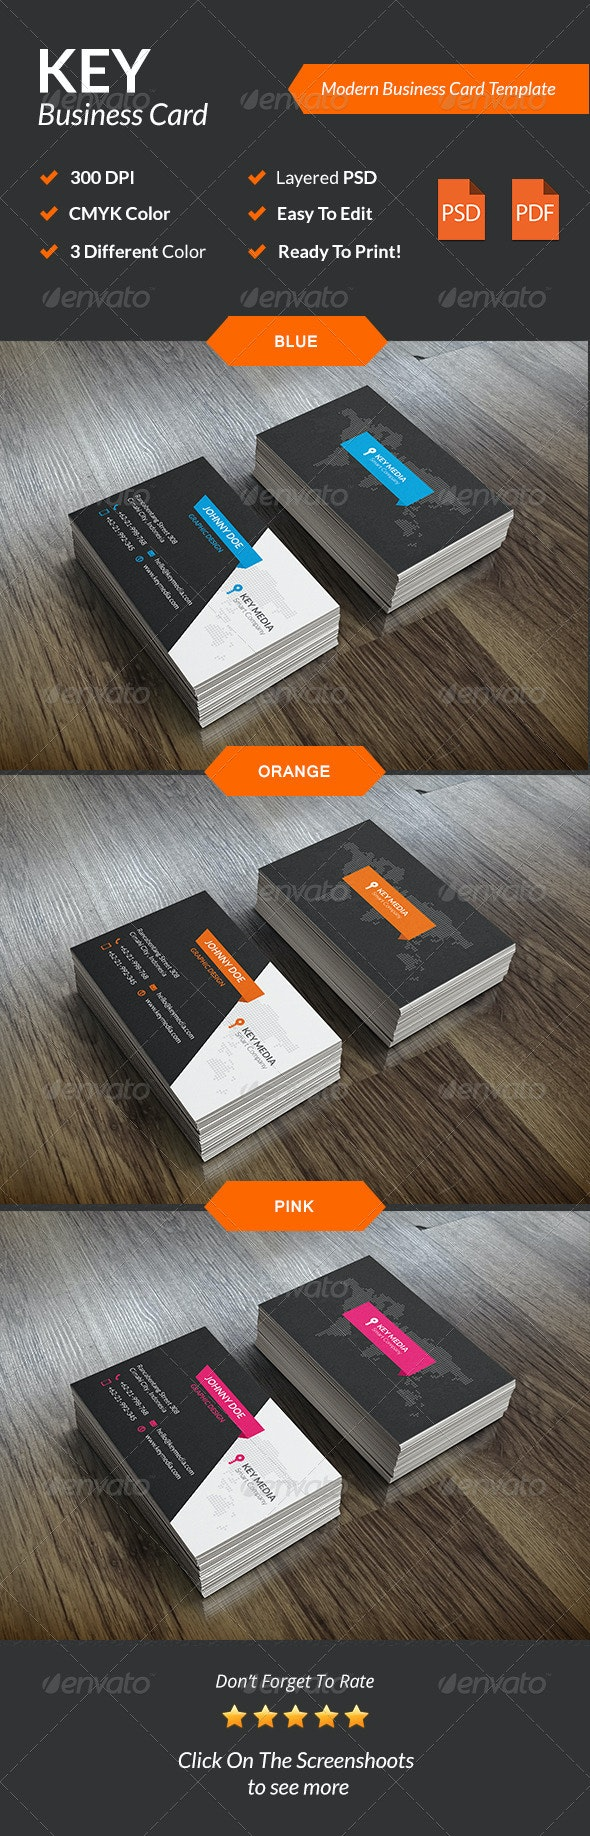 Key Modern Business Card - Corporate Business Cards